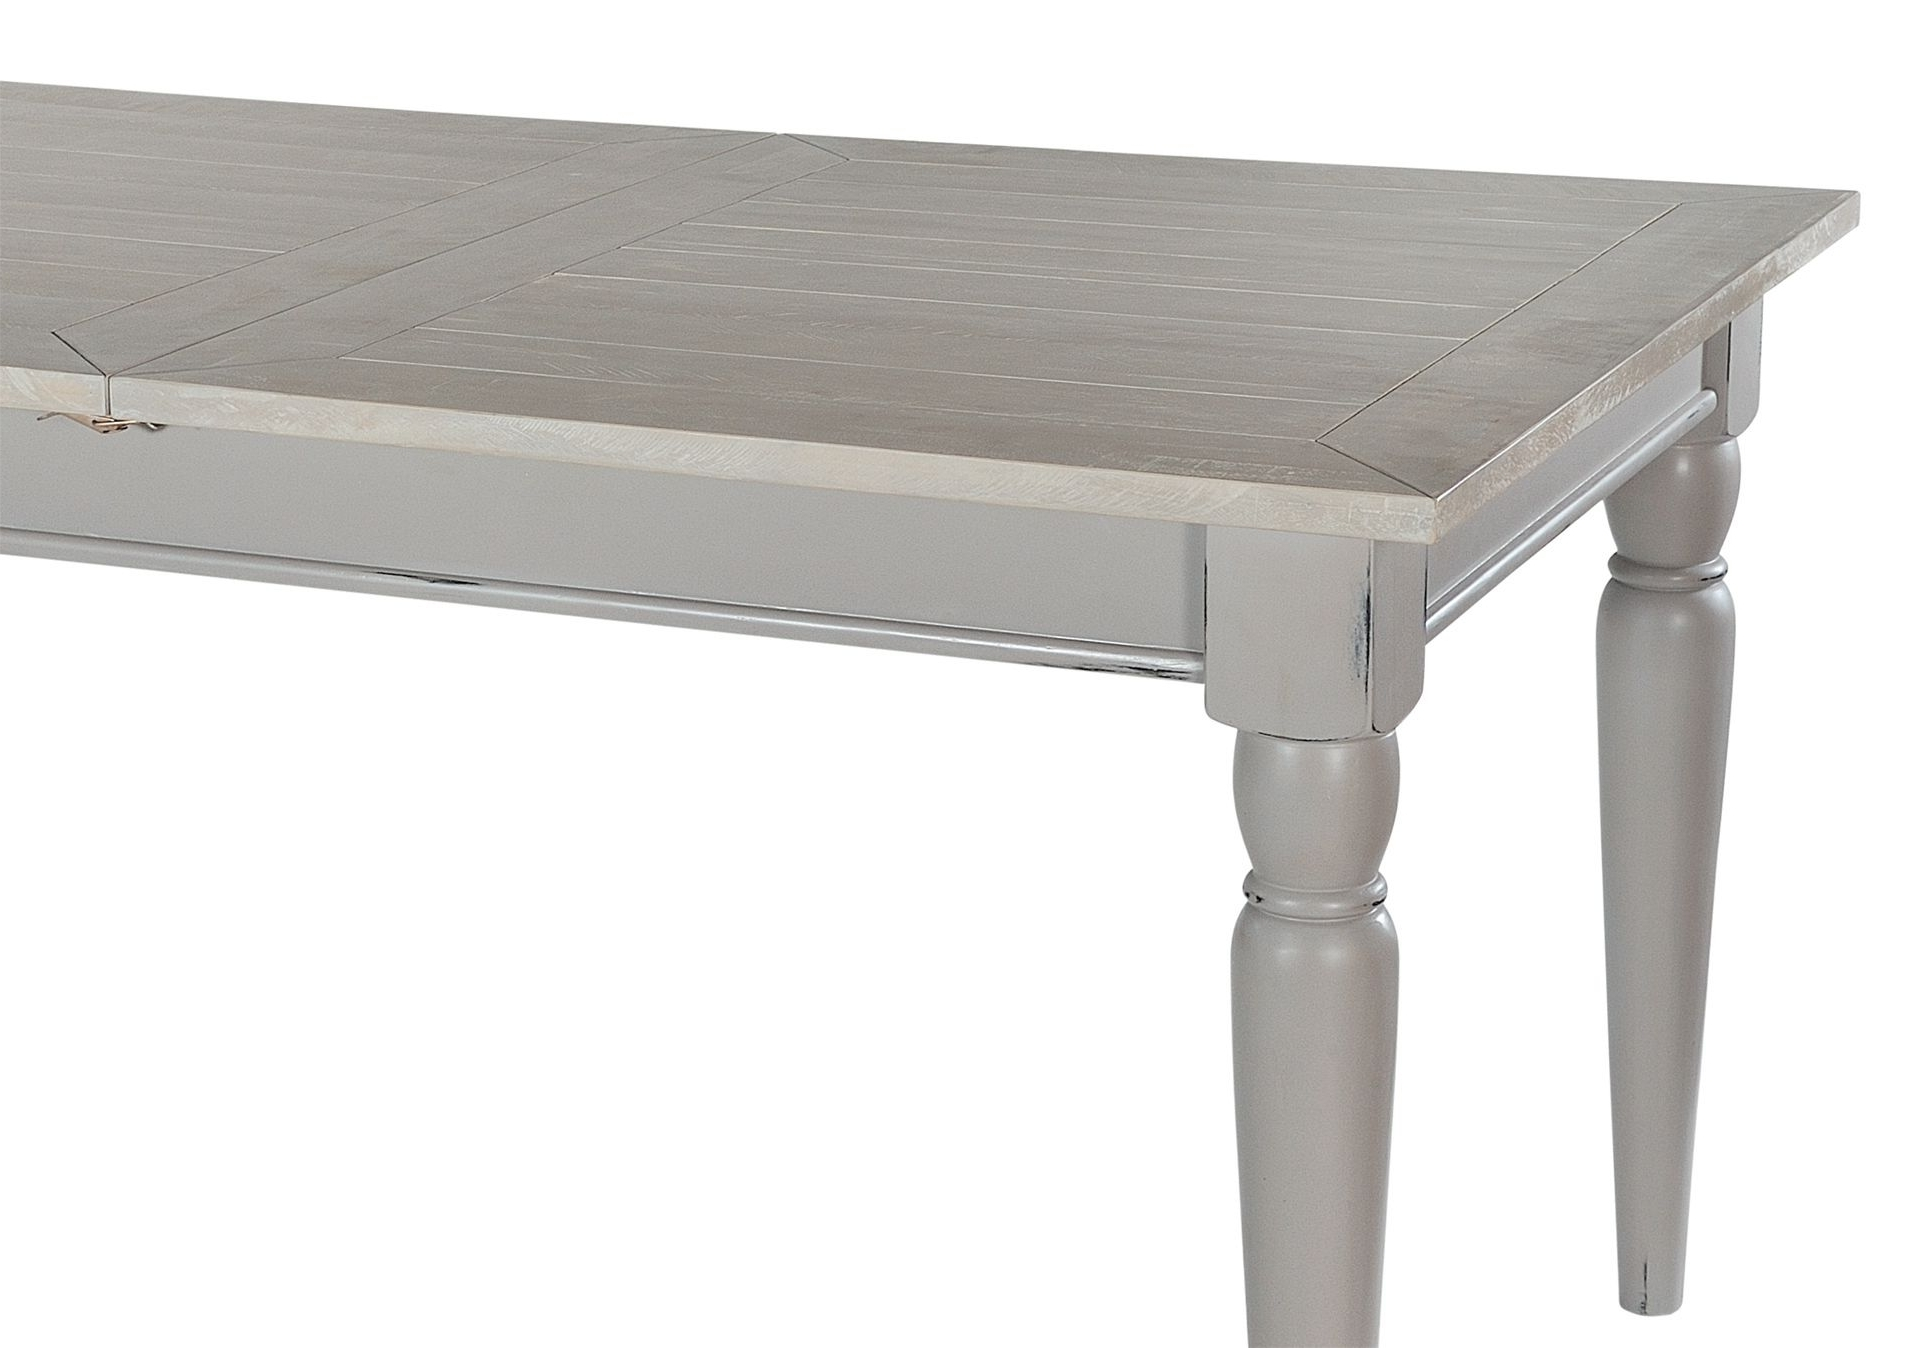 Best And Newest Shabby Chic Extendable Dining Tables With Regard To Grey Shabby Chic Extendable Dining Table – Bovary (View 4 of 25)